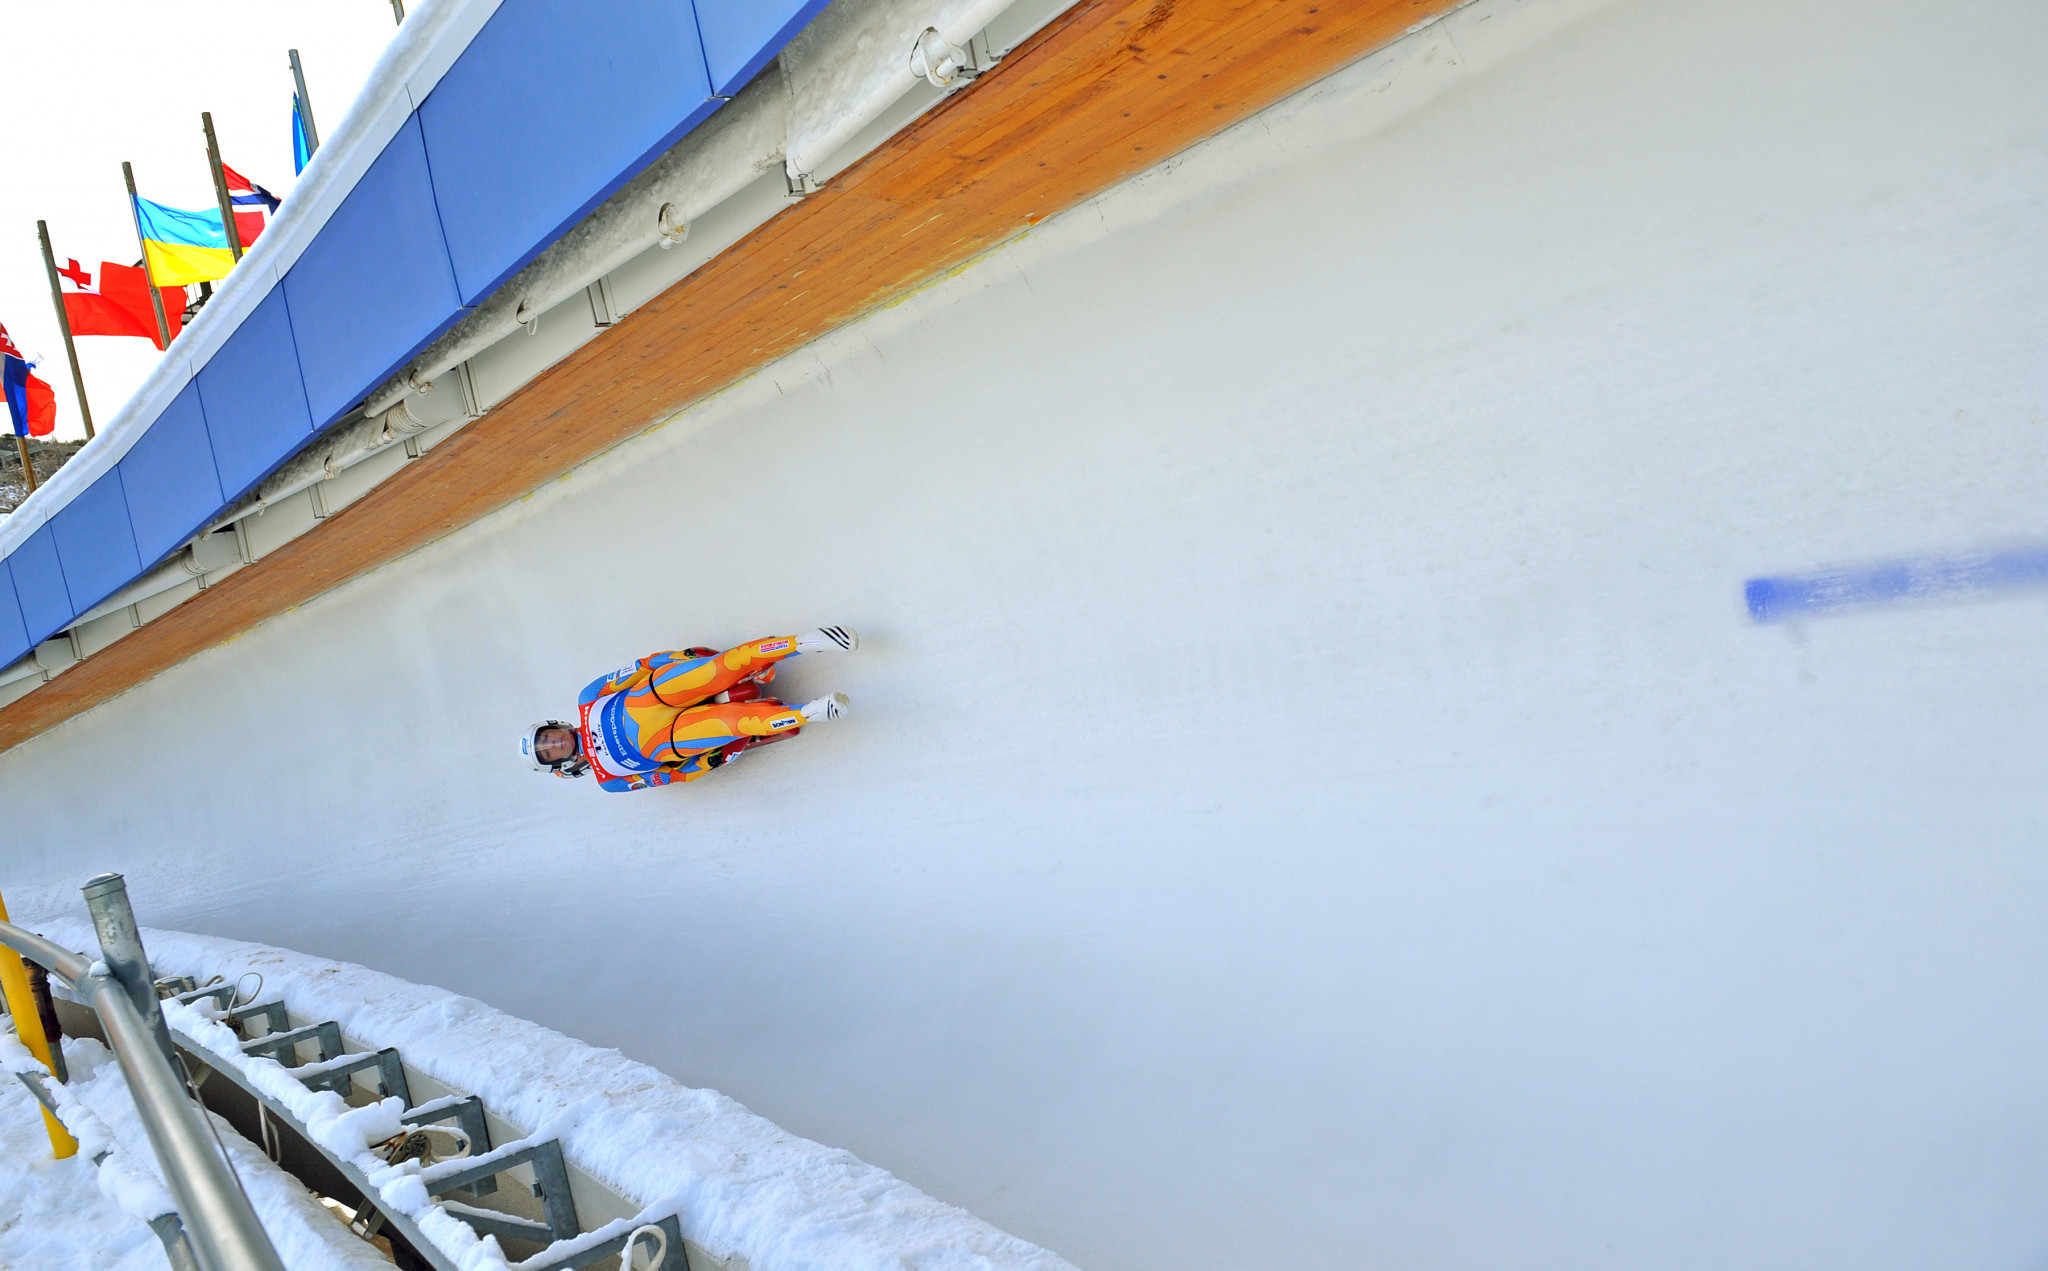 The International Luge Federation World Cup is set to take place in Sigulda in Latvia this weekend ©Getty Images